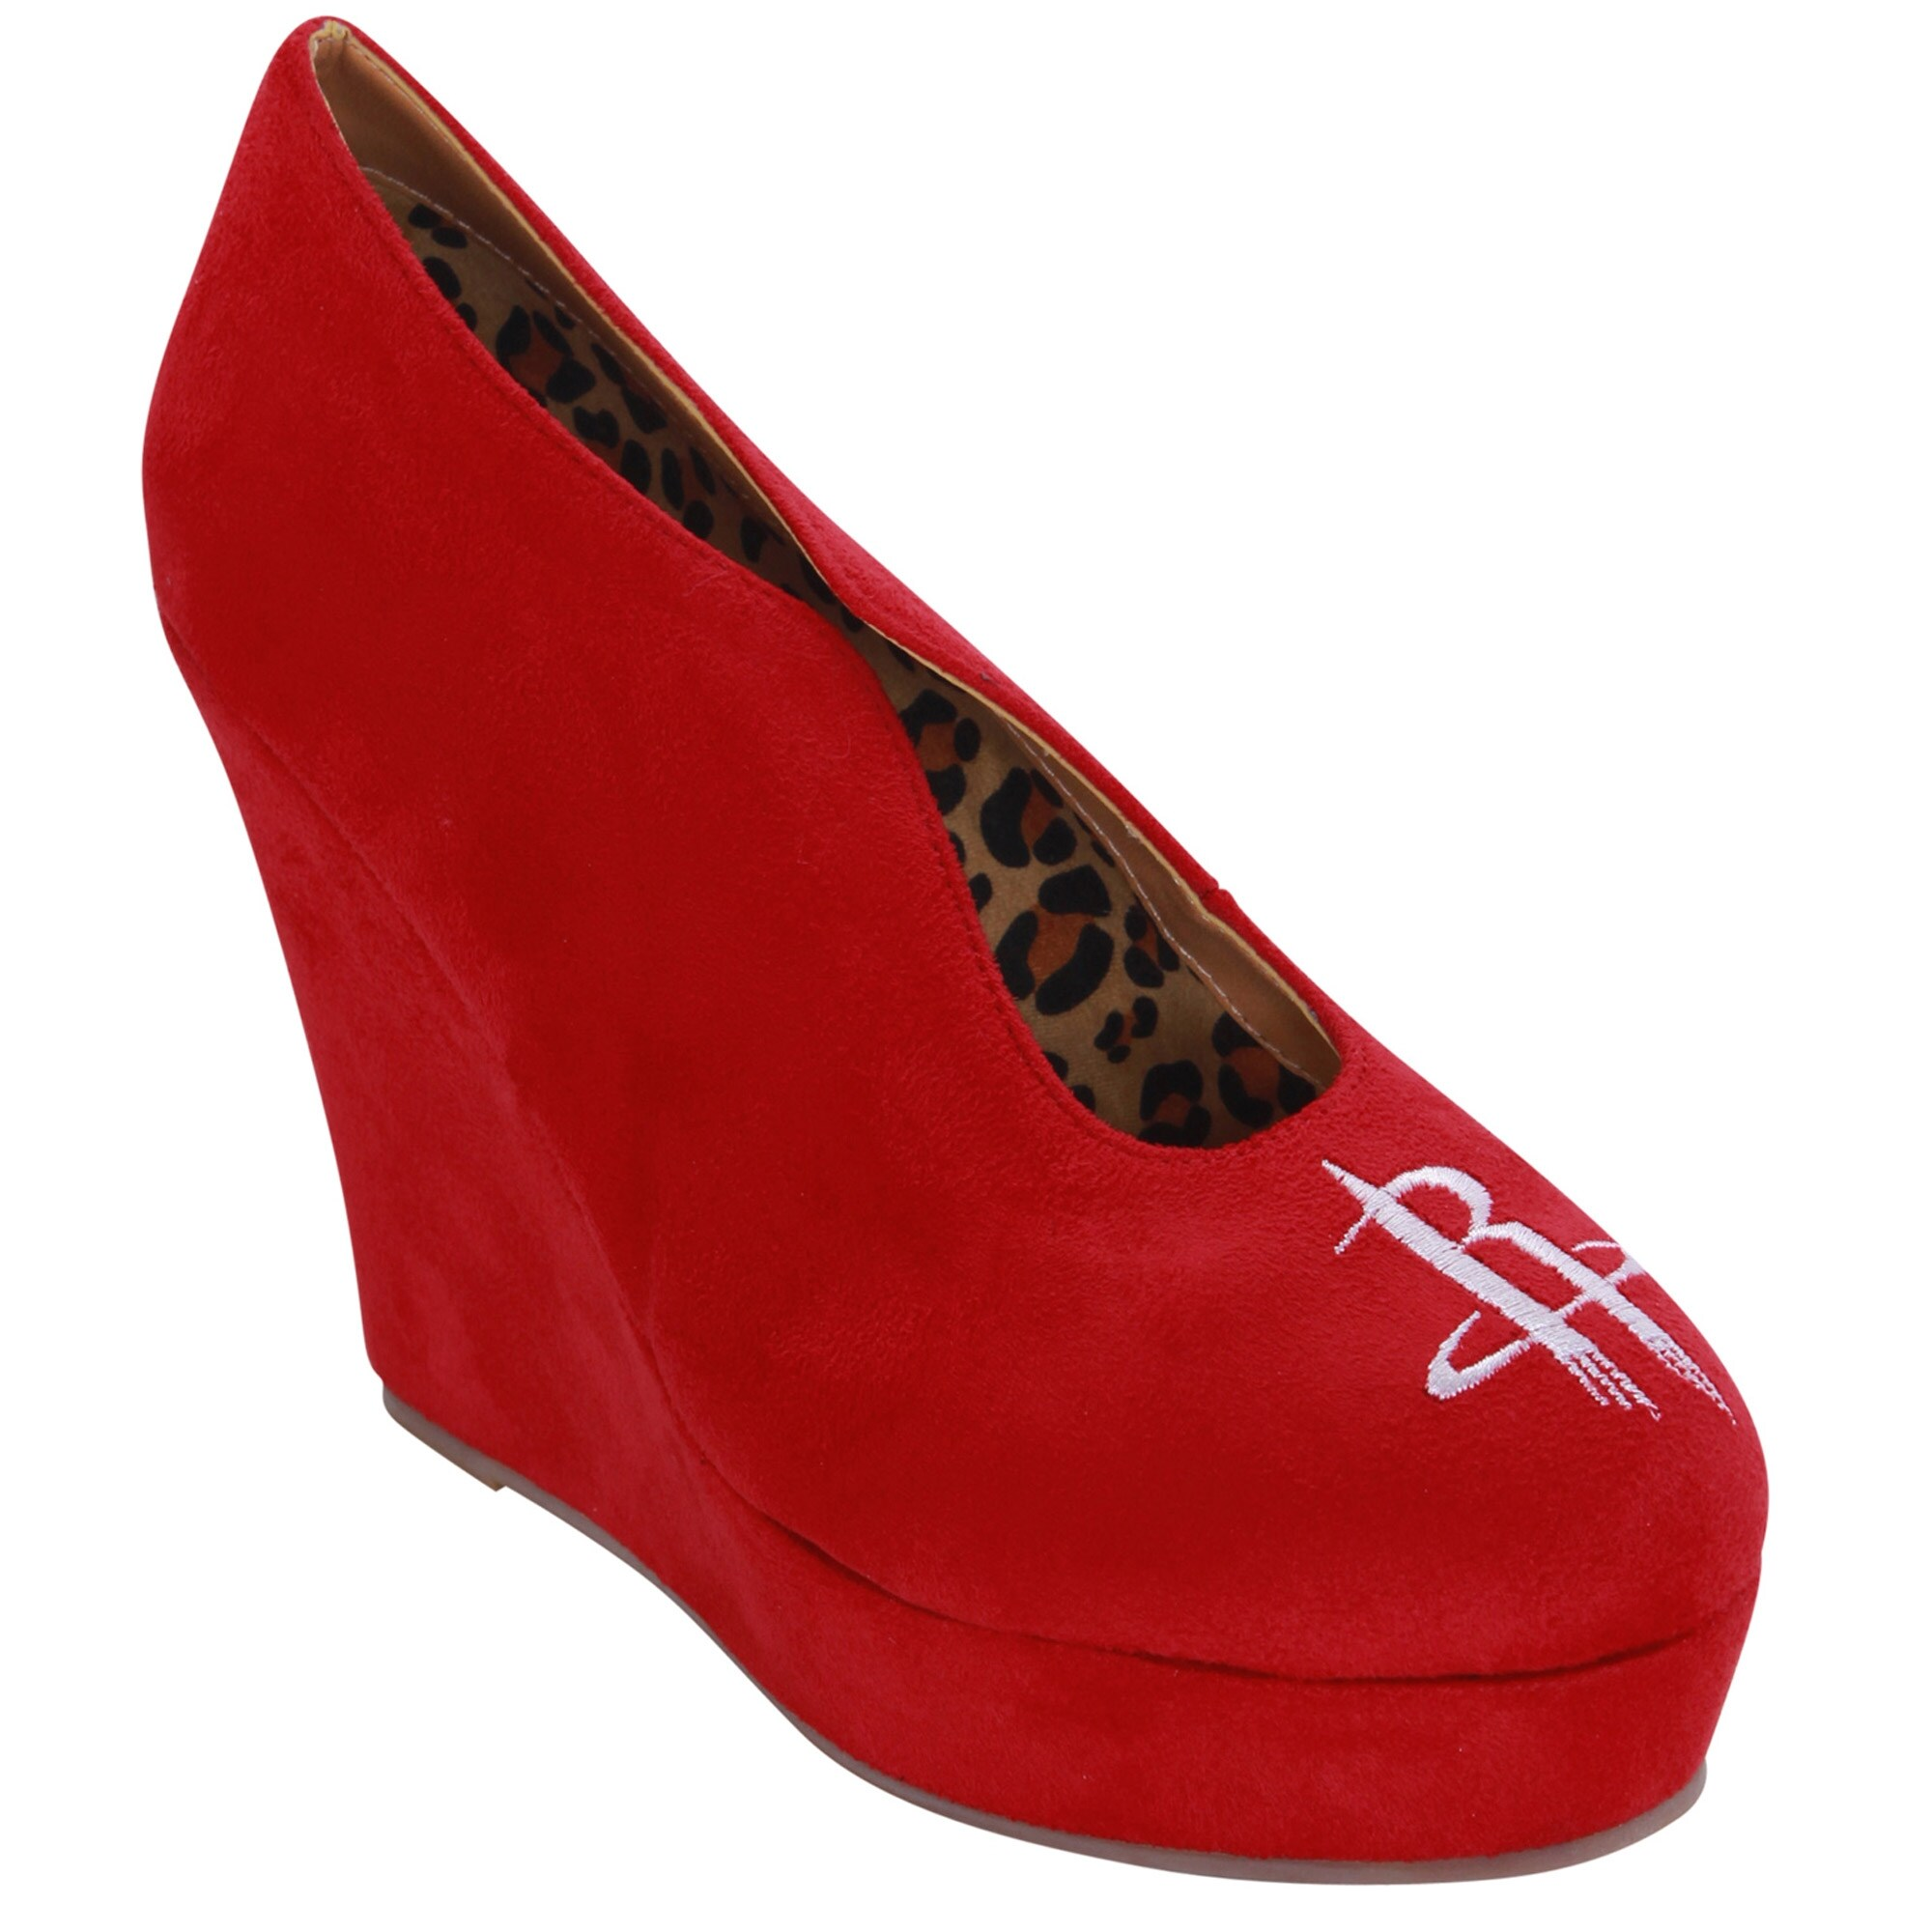 Houston Rockets Cuce Shoes Women's Spirited Wedge Pumps - Red